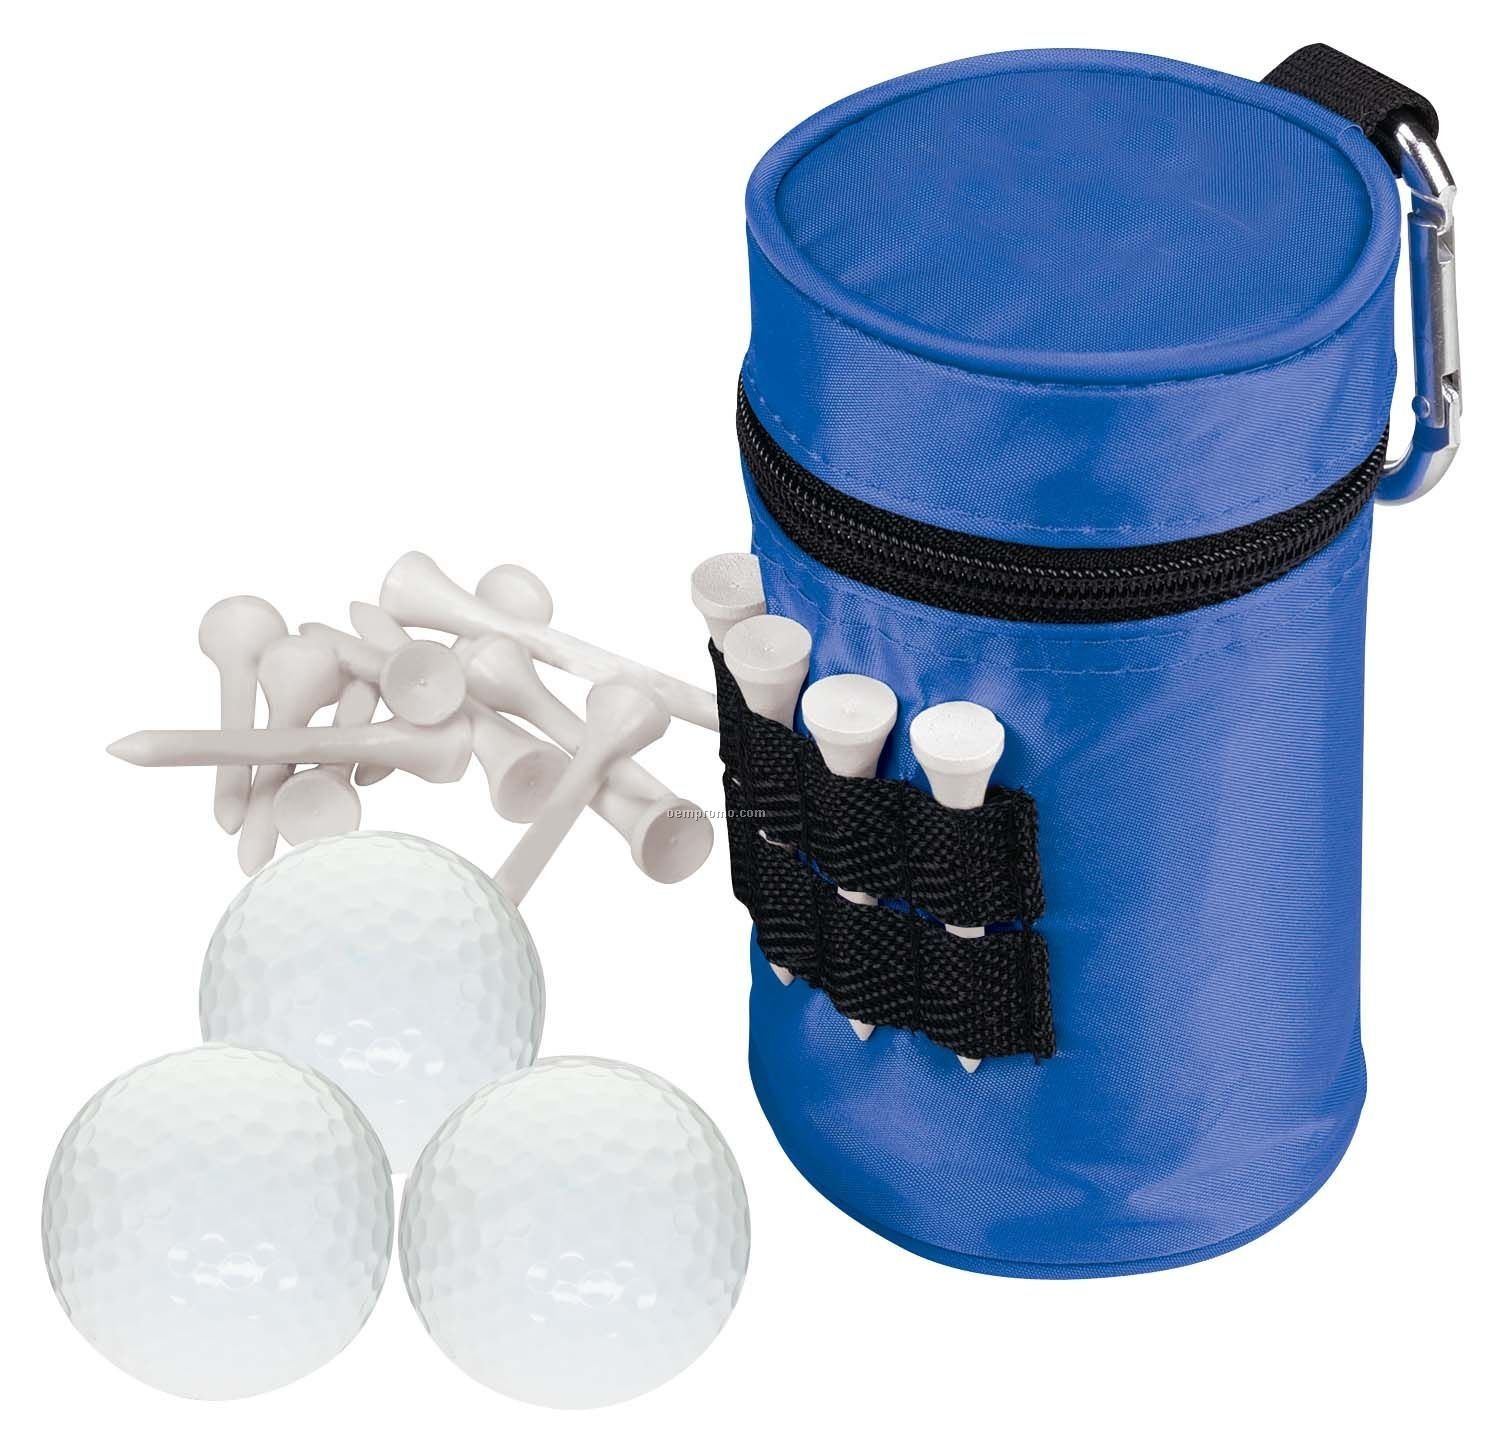 Tee Off Mulligan Can Cooler W/ 3 Top Flite Xl Distance Golf Balls & 15 Tees